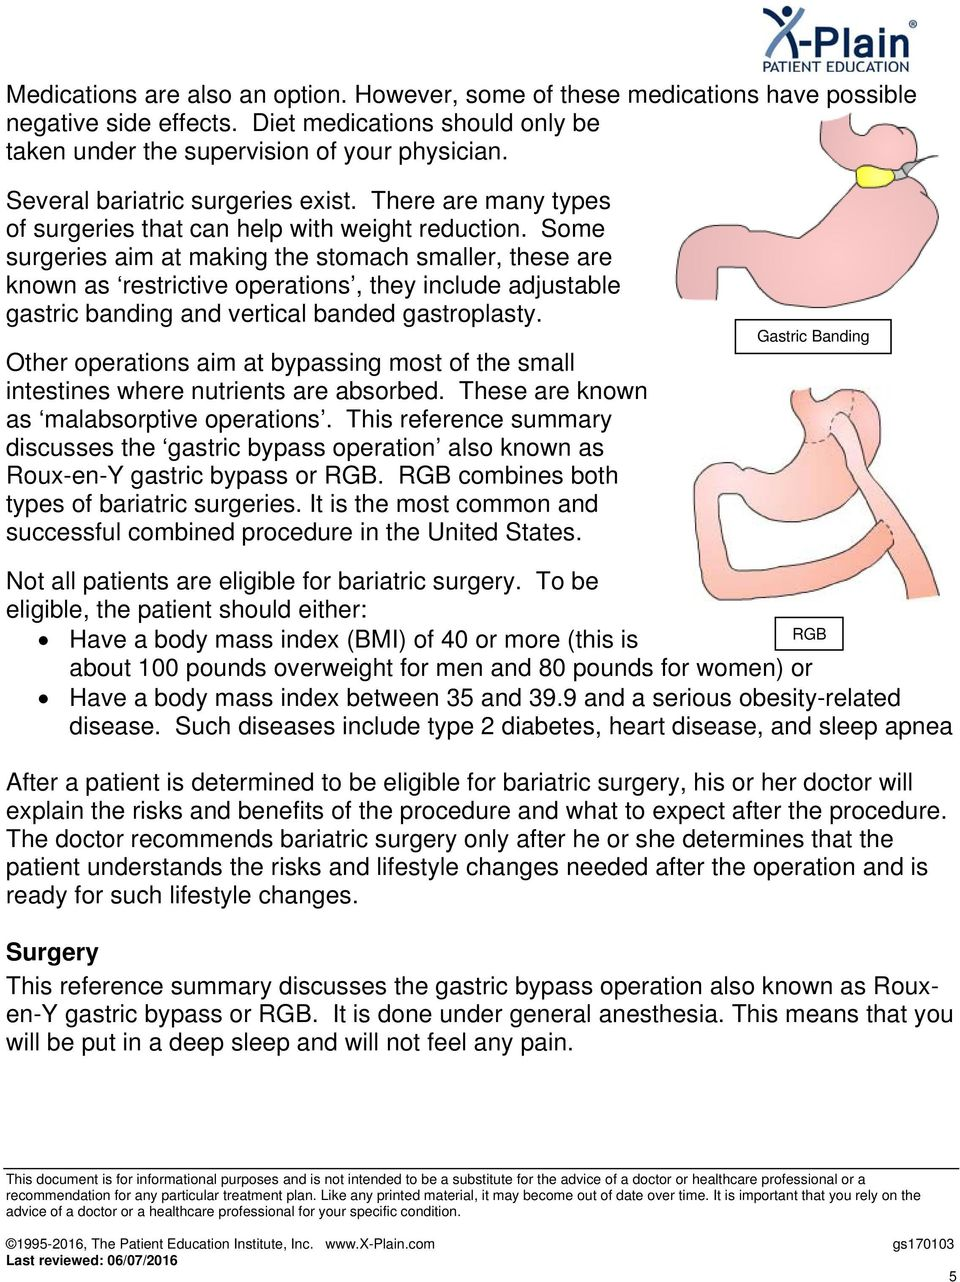 Some surgeries aim at making the stomach smaller, these are known as restrictive operations, they include adjustable gastric banding and vertical banded gastroplasty.